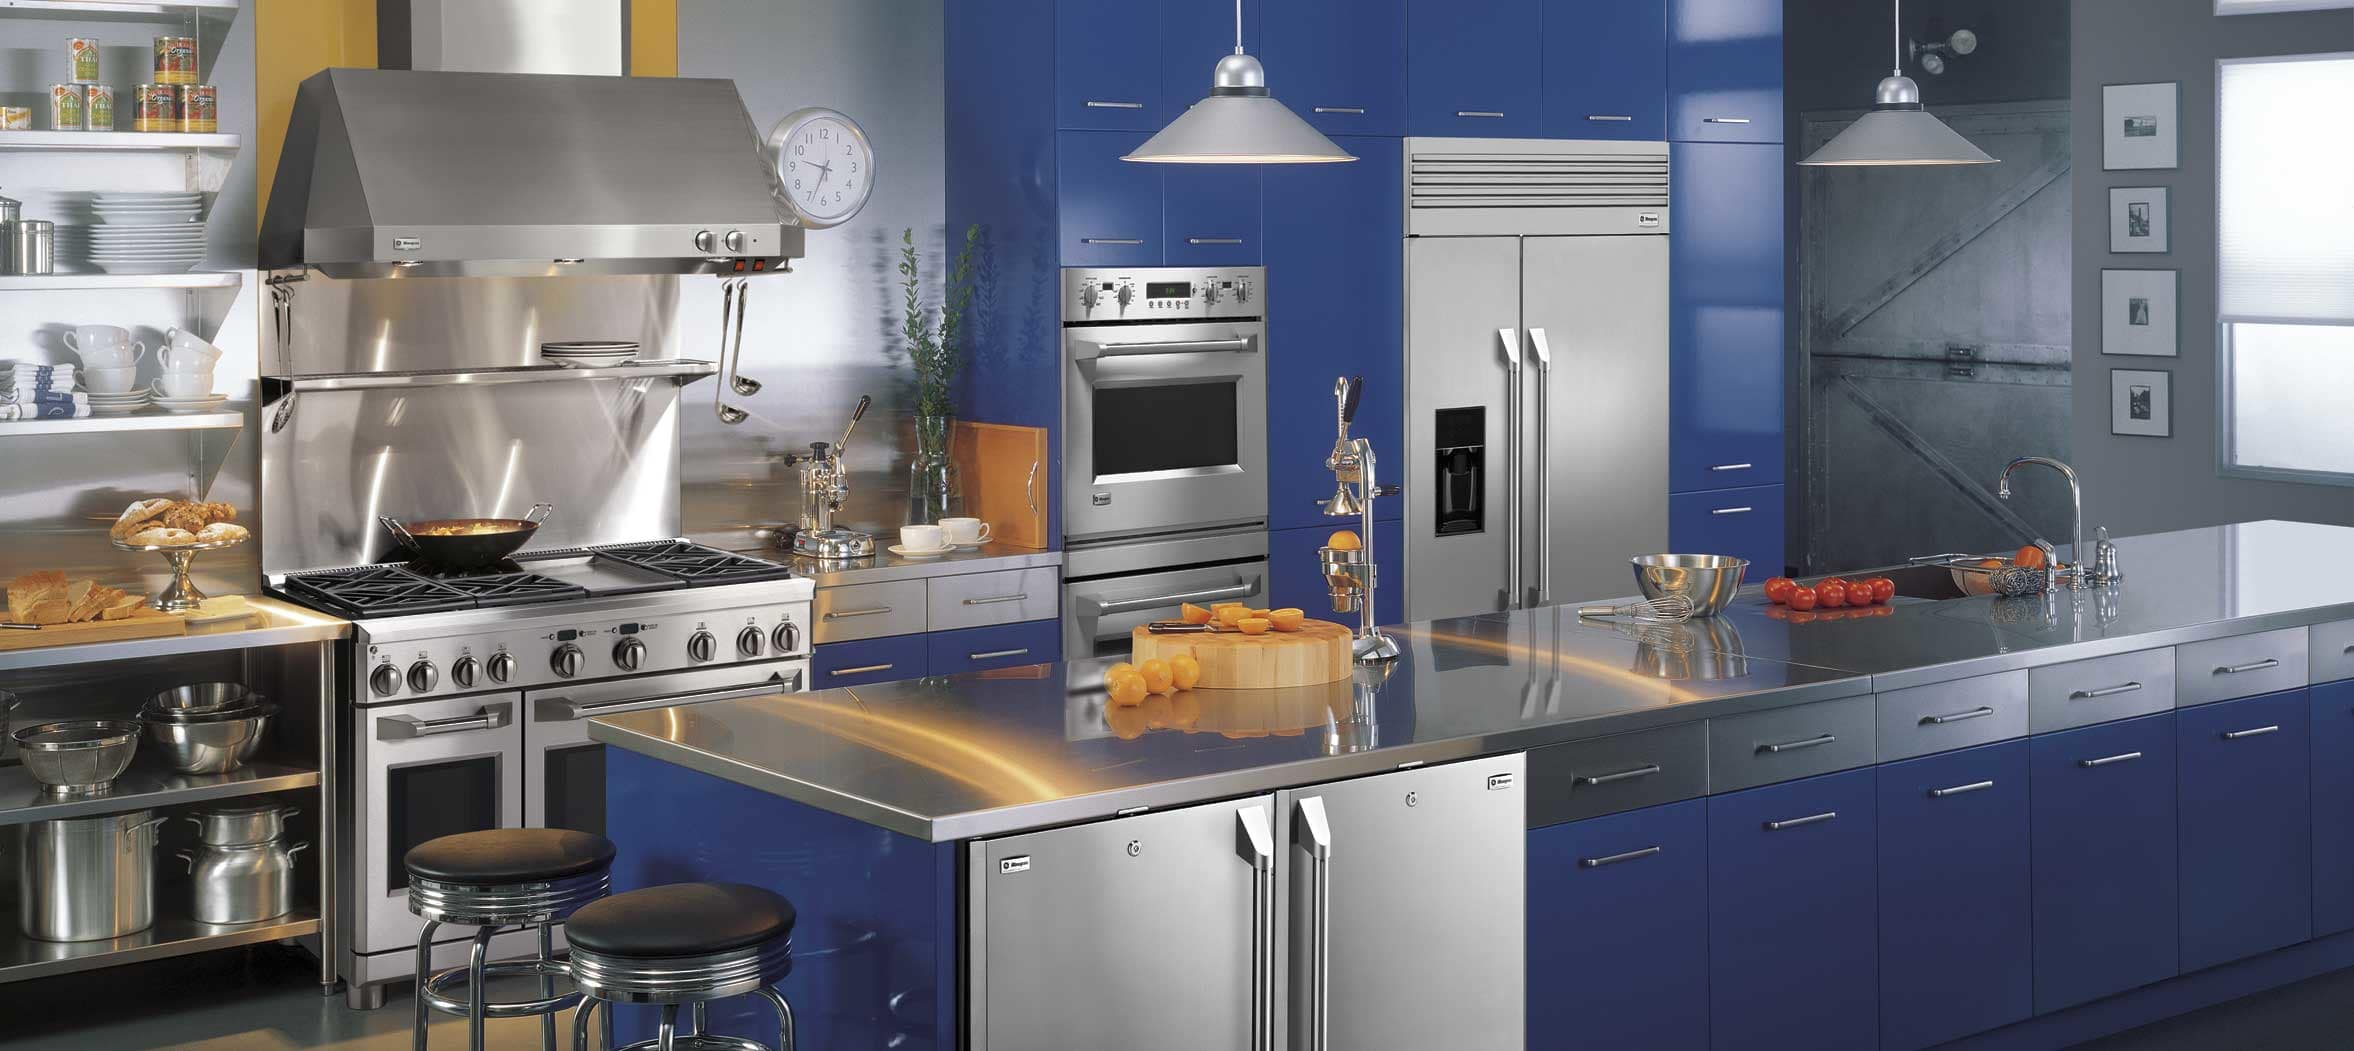 A striking blue design using GE Monogram professional appliances.